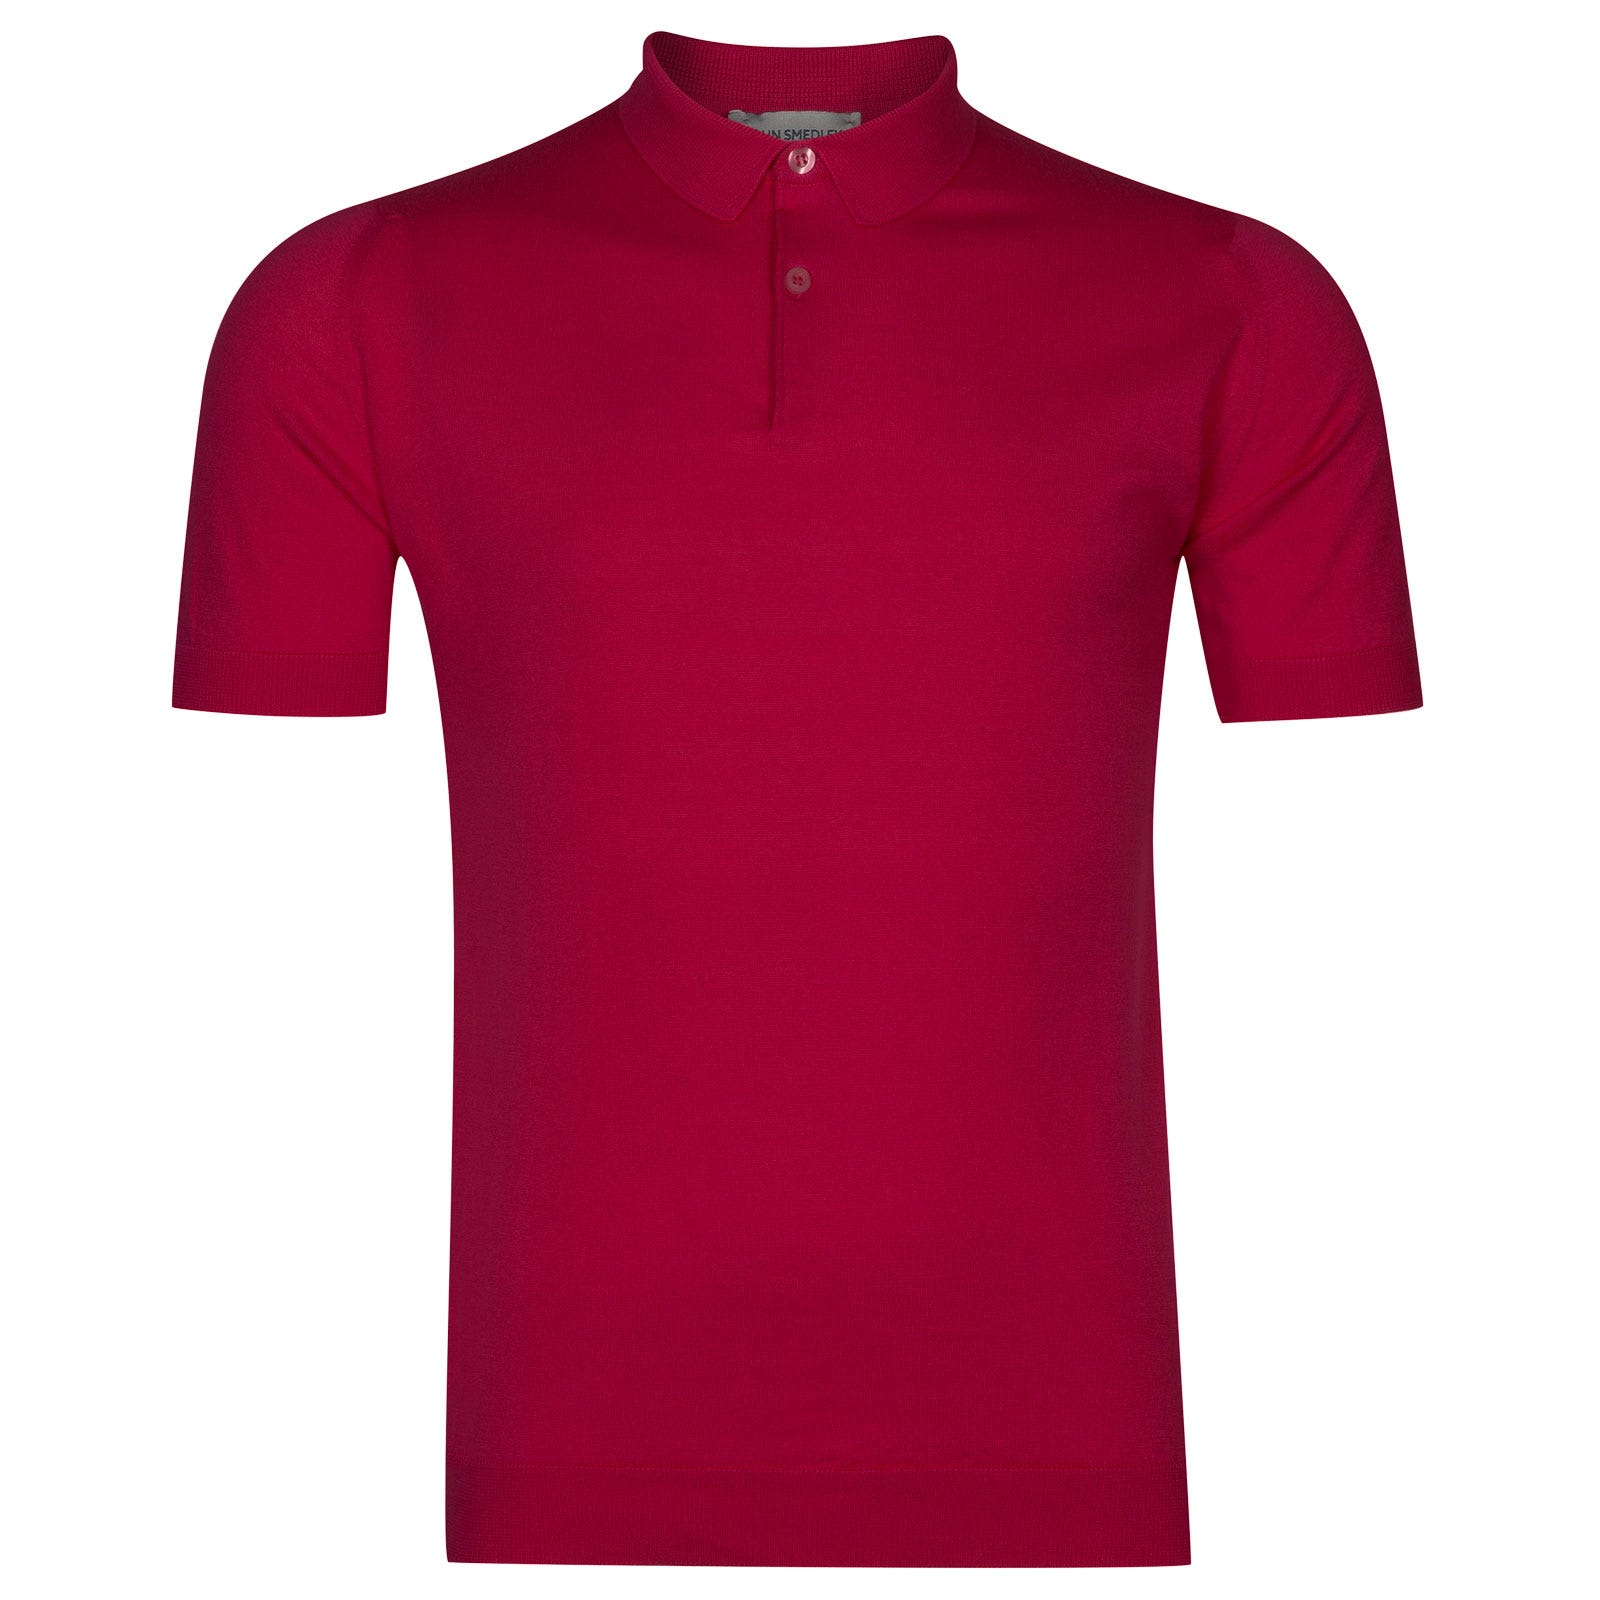 John Smedley rhodes Sea Island Cotton Shirt in Scarlet Sky-M